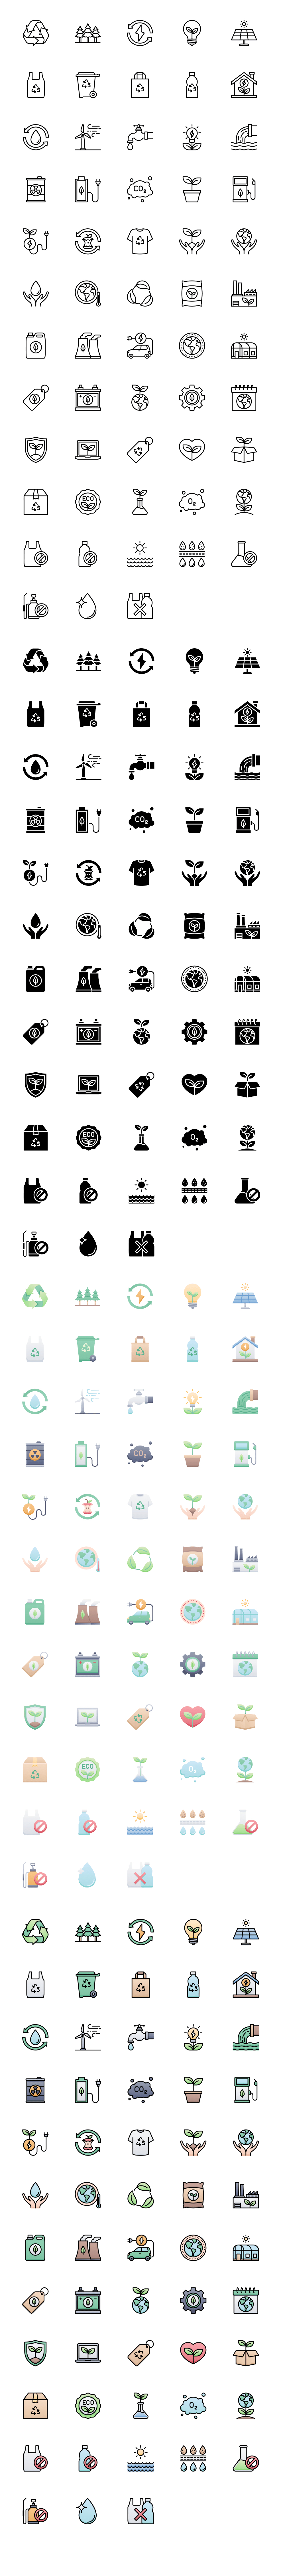 58 Ecology & Nature Free Icons - Free icons for nature, ecology, climate change, biology, sustainable living, and everything planet Earth.